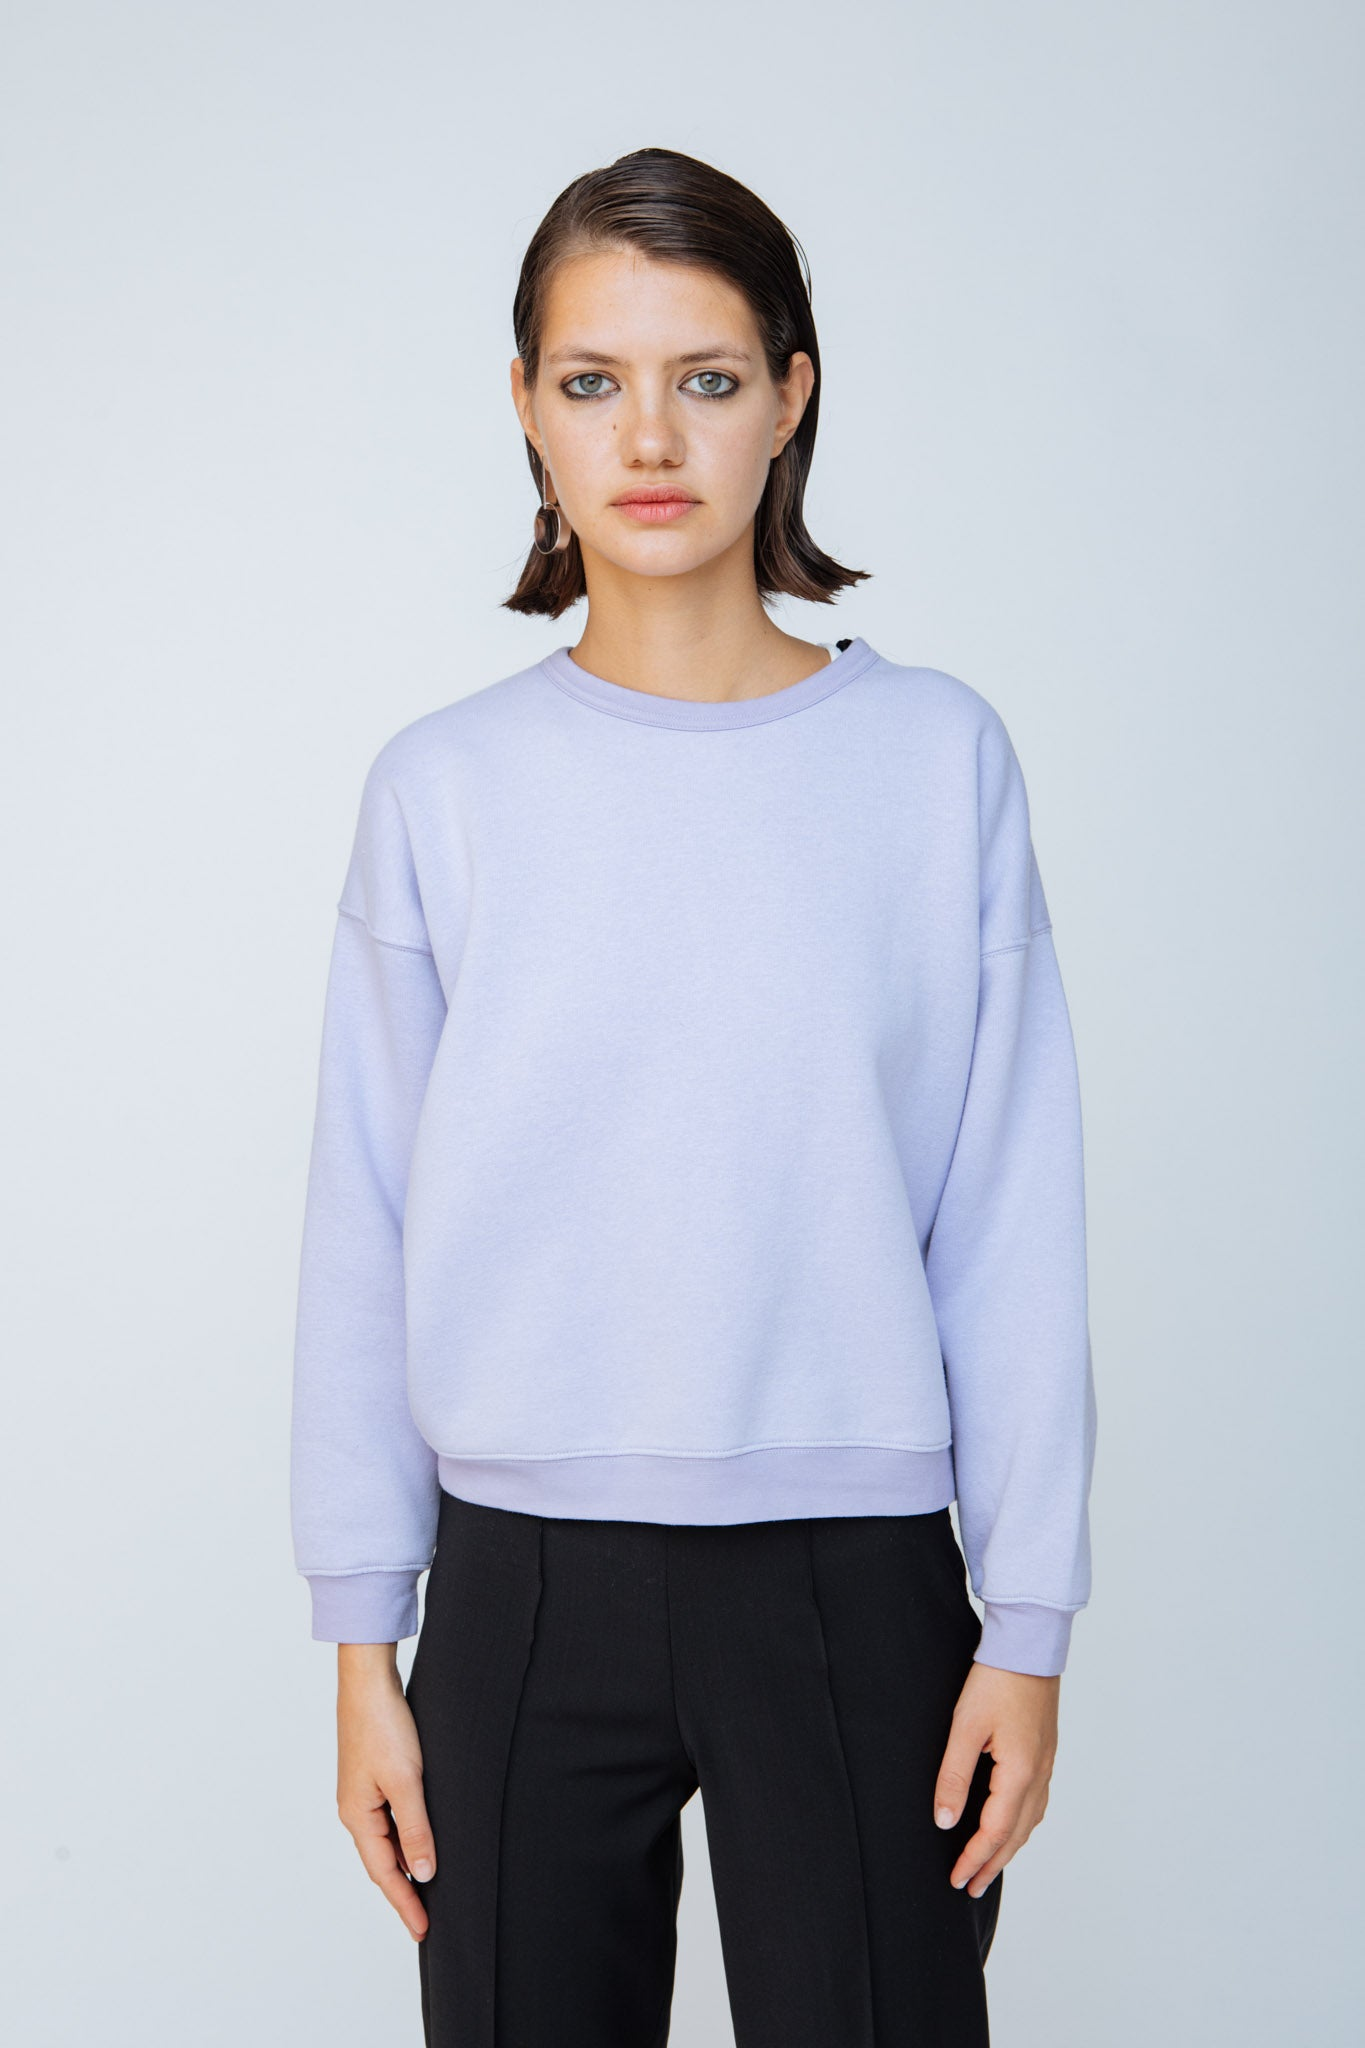 Volf Sweater - Women's